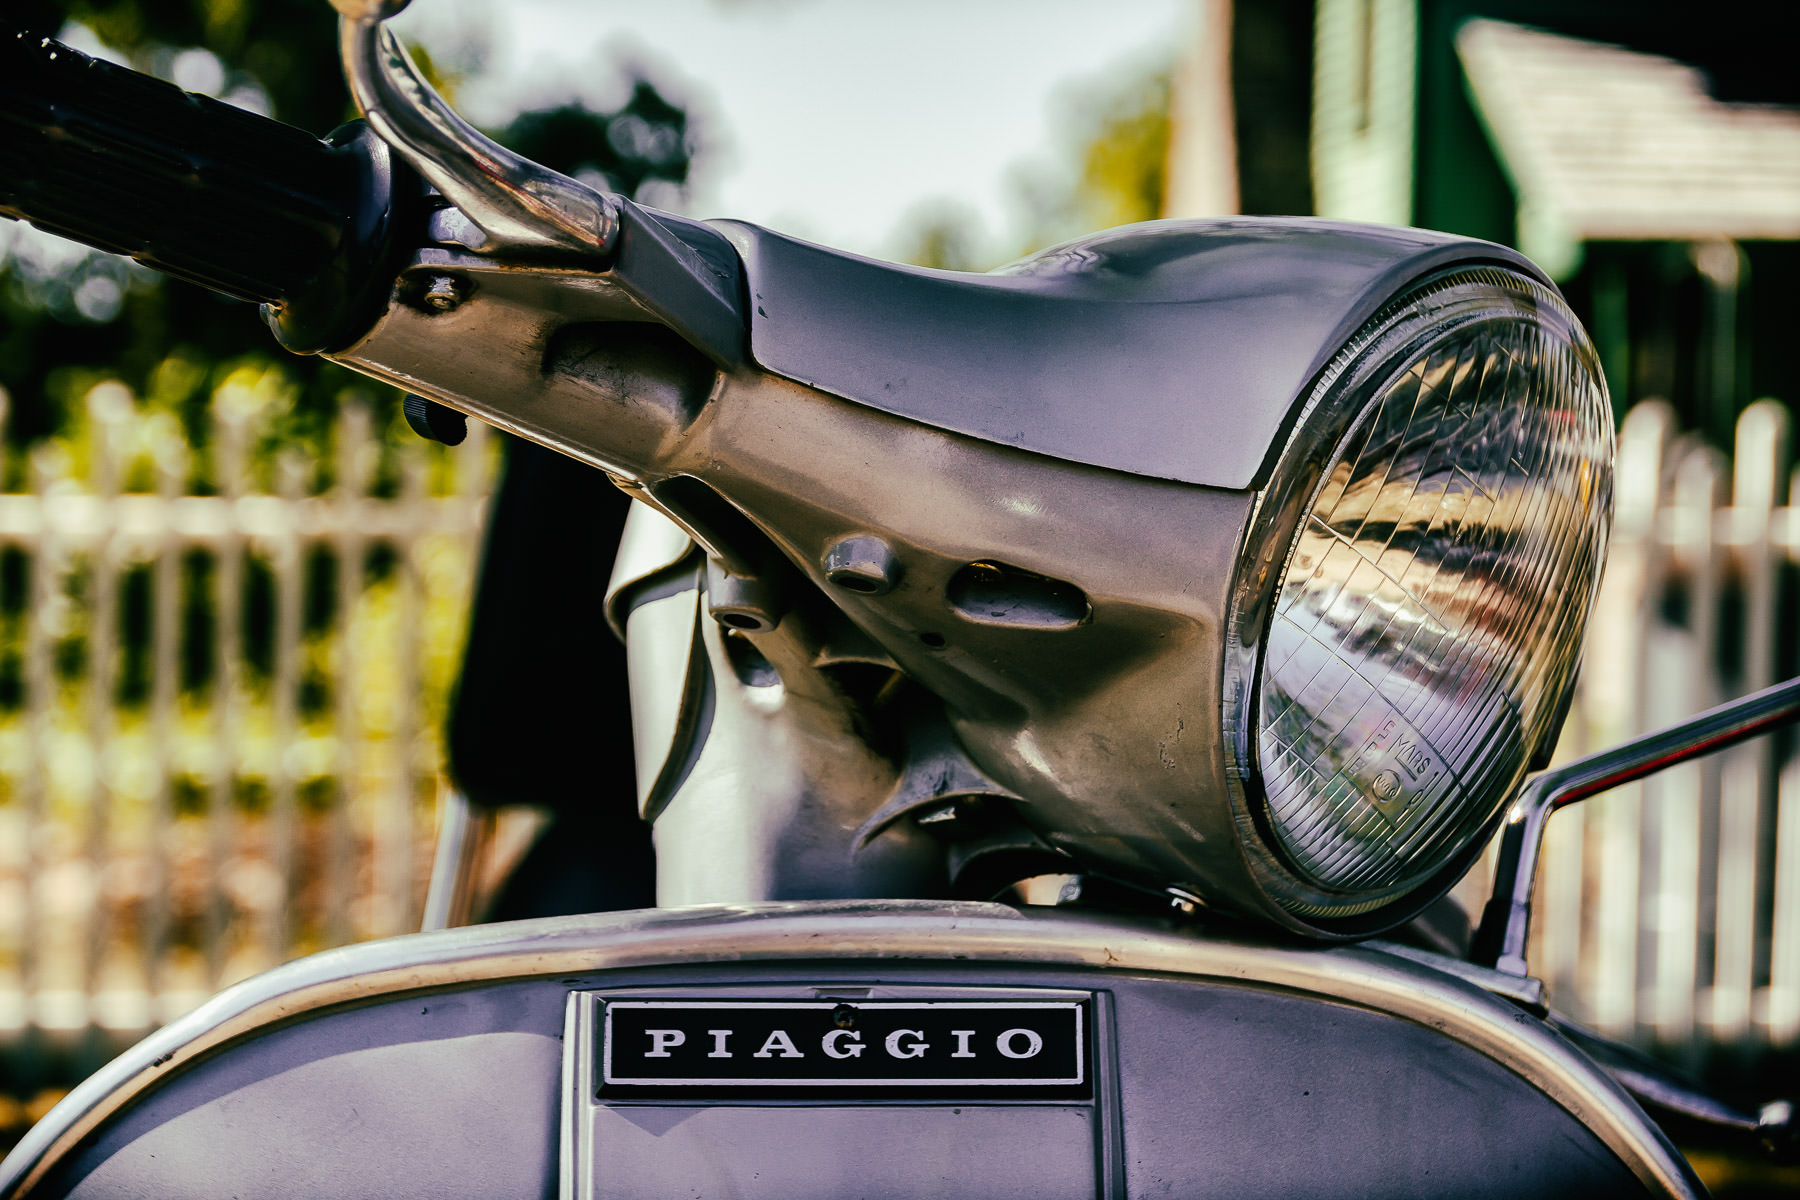 Detail of a Piaggio Vespa scooter at ItalianCarFest in Grapevine, Texas.